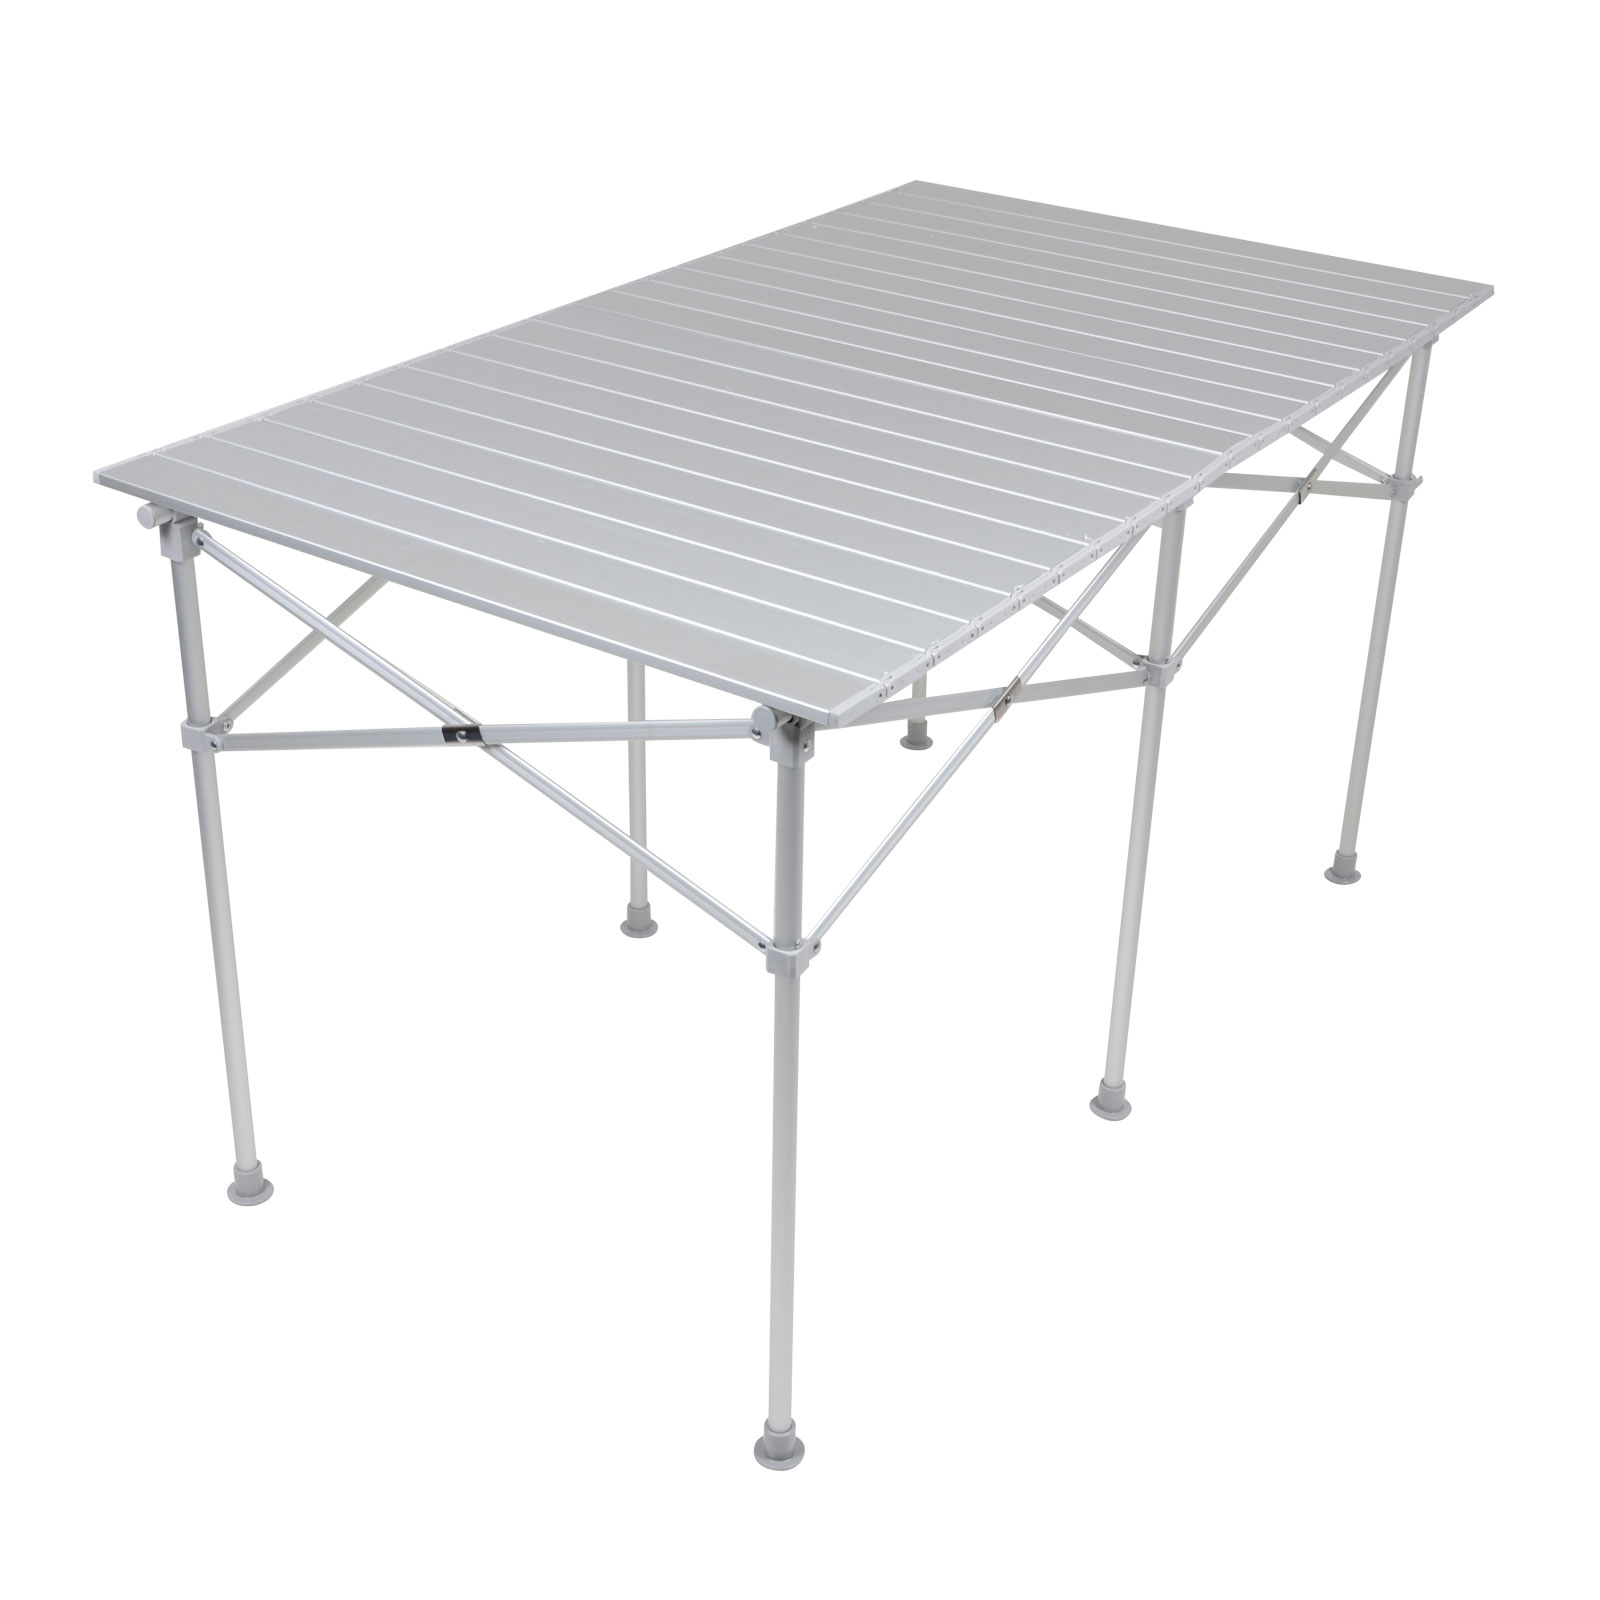 Incroyable Outdoor Portable Aluminum Camping Picnic Folding Dining Table